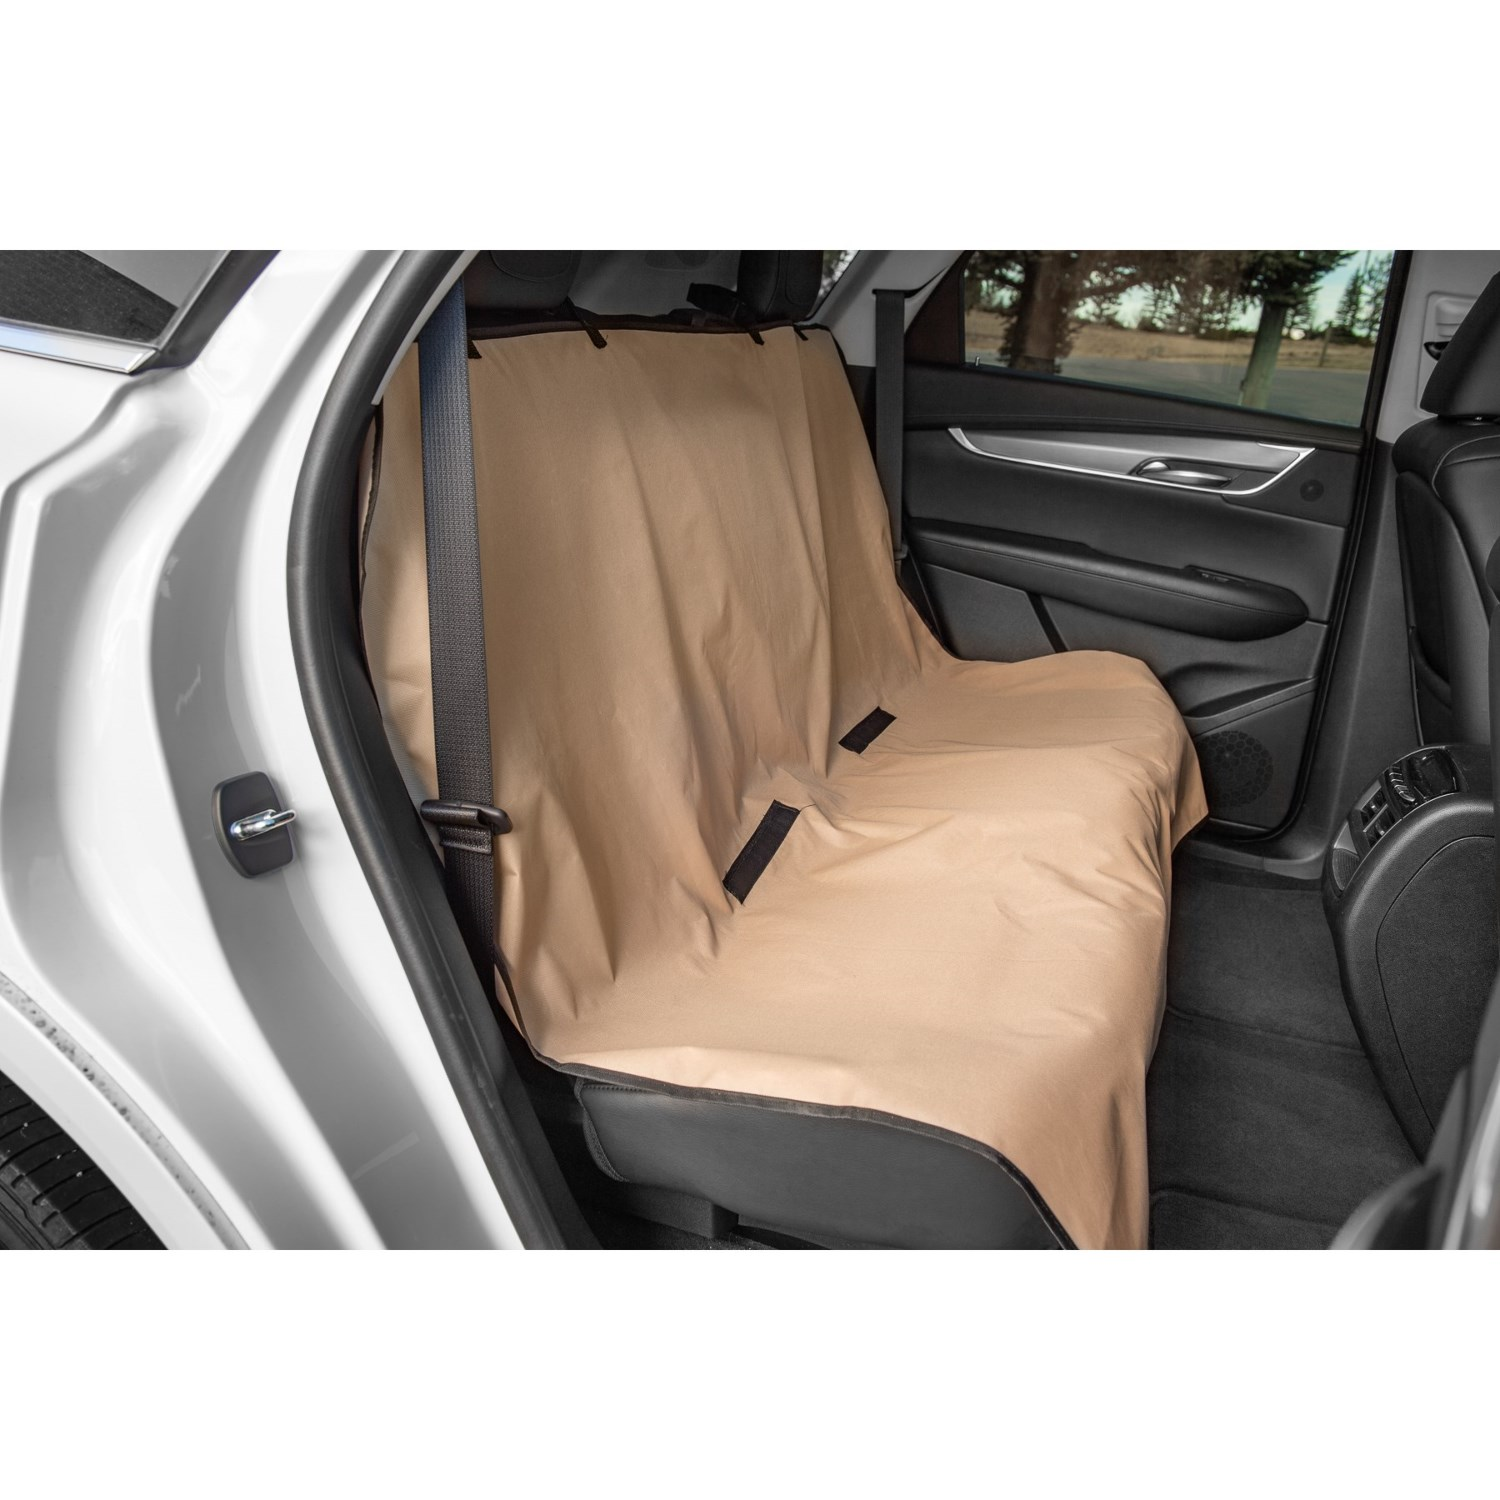 Car Bench Seat Covers >> Co Pilot Waterproof Car Bench Seat Cover 56x47 Save 28